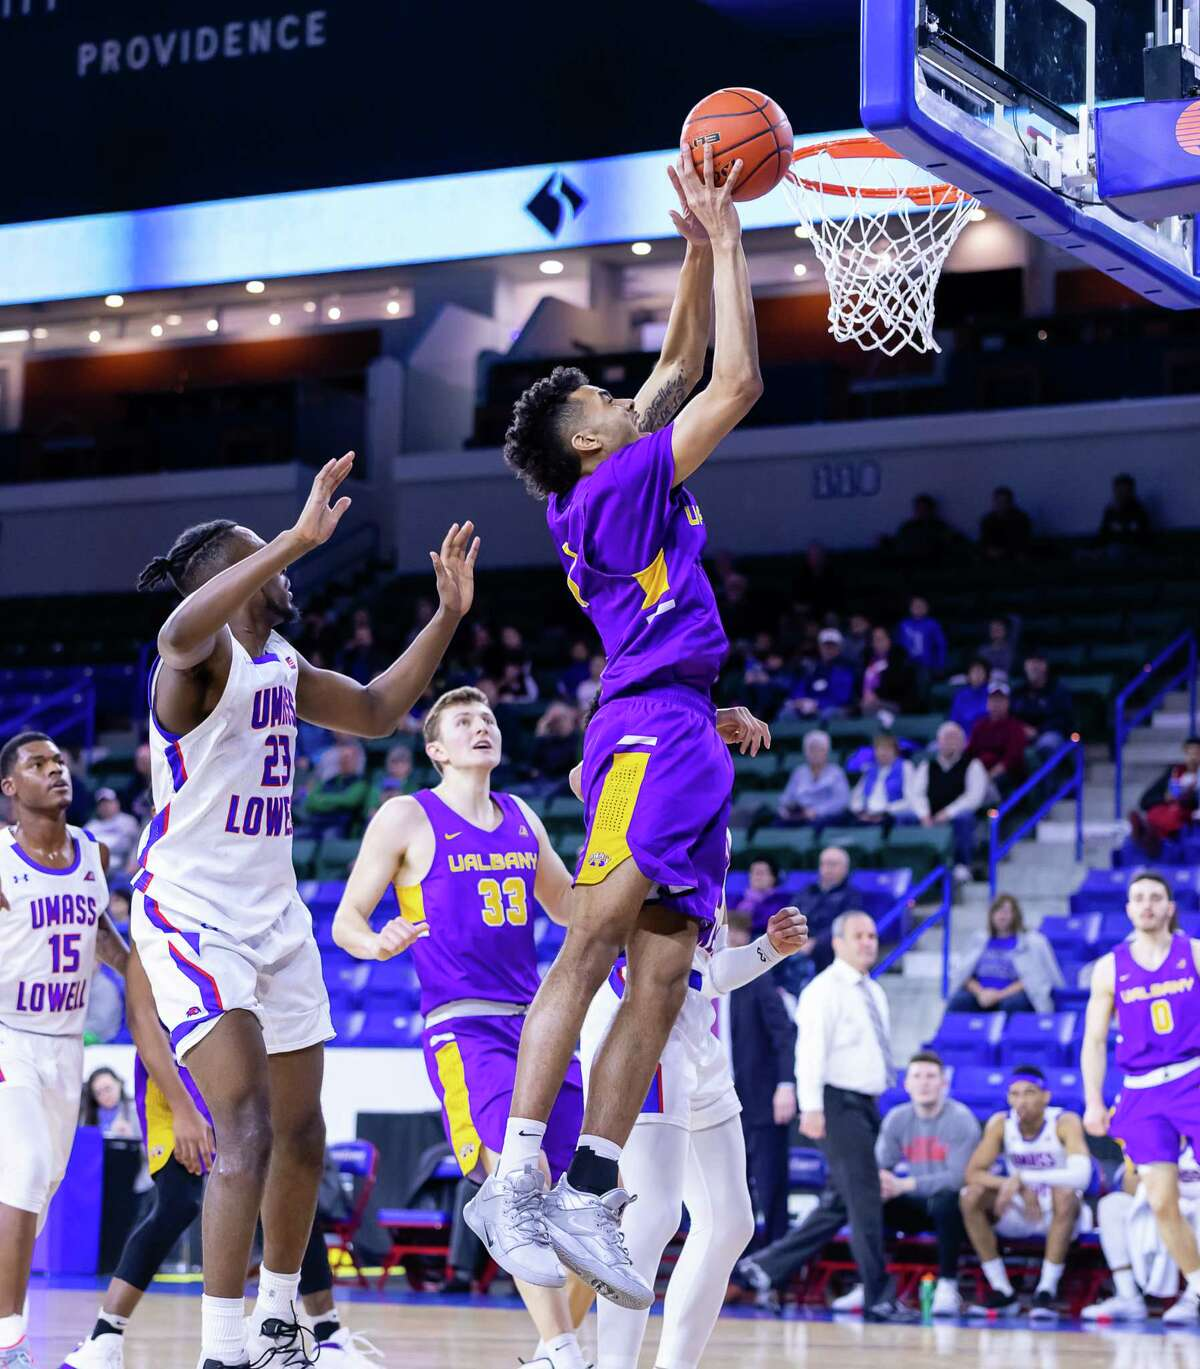 Malachi de Sousa of UAlbany goes to the basket against UMass Lowell during their game on Wednesday, Feb. 26, 2020, at Tsongas Arena. (Courtesy of UAlbany athletics)